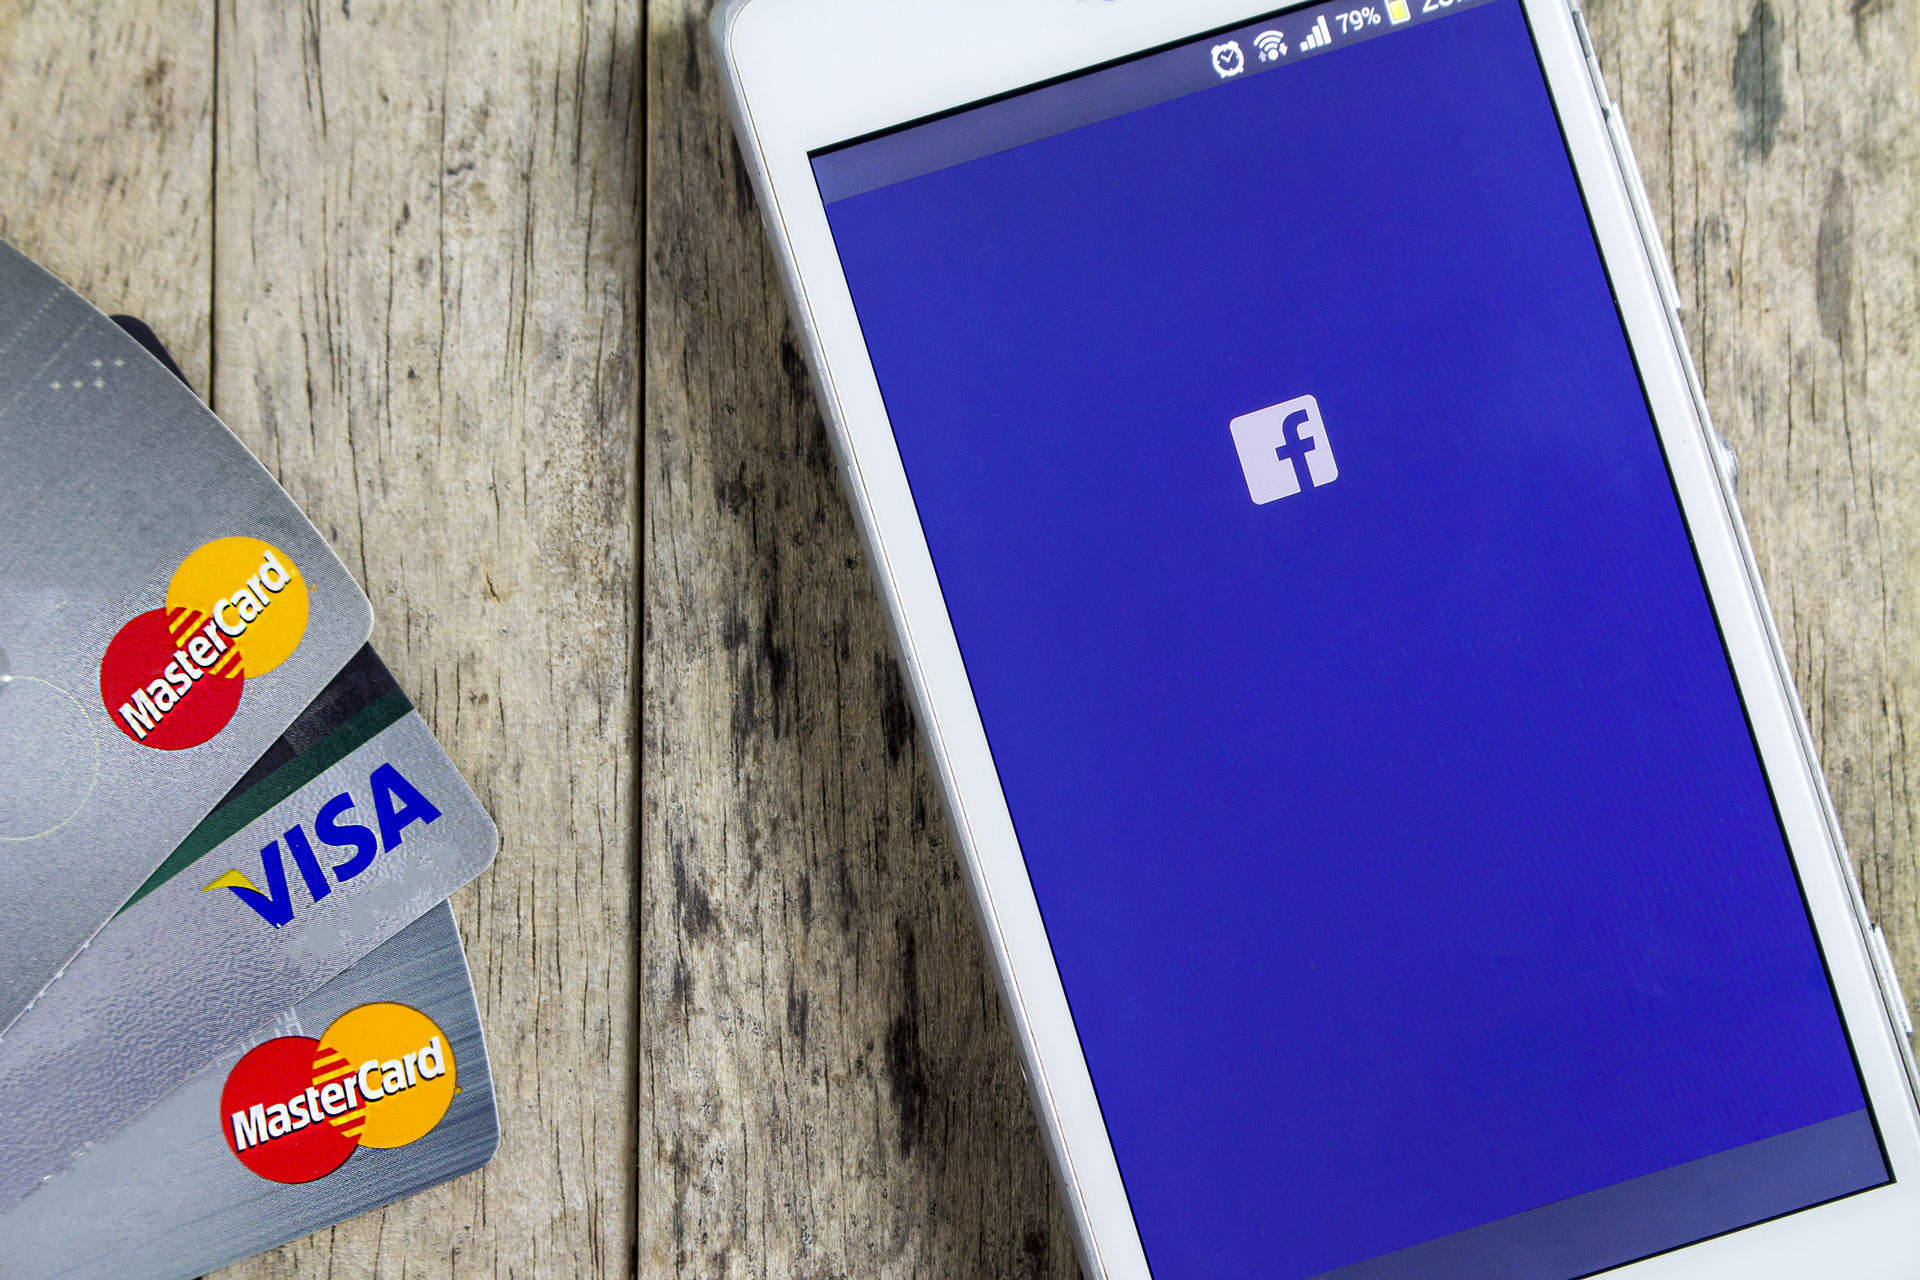 Byron launches Facebook Messenger payment bot